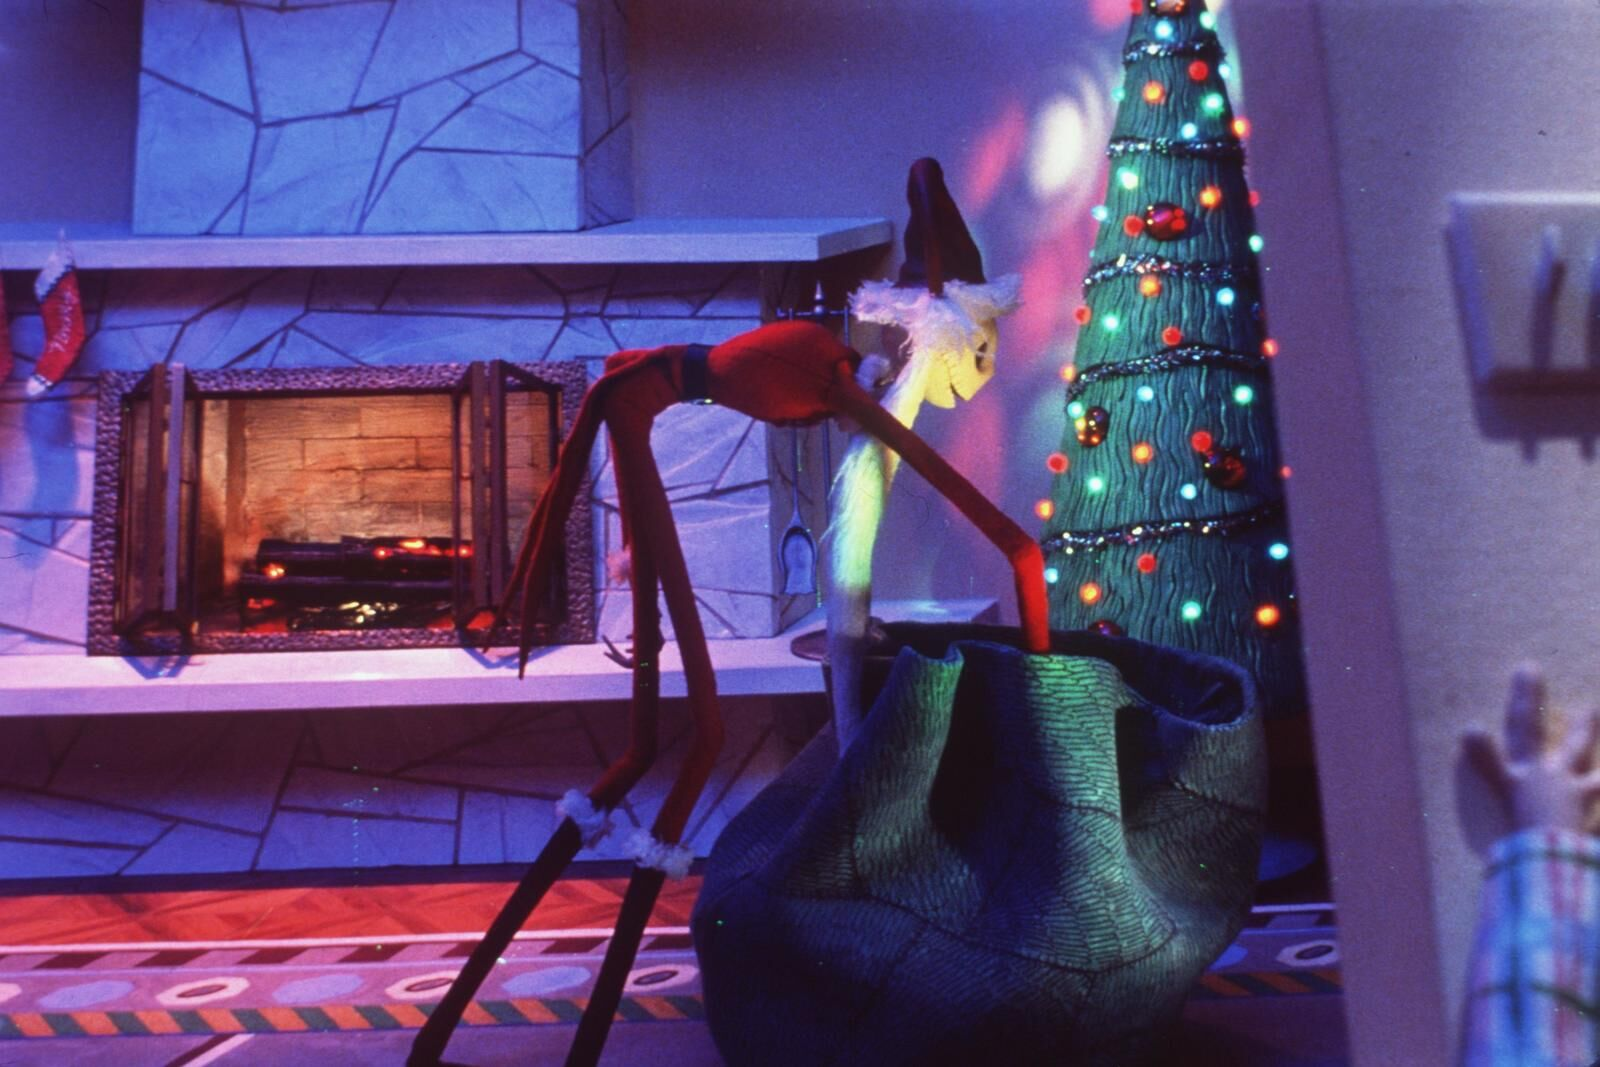 25 best Christmas movies countdown #10: A Nightmare Before Christmas